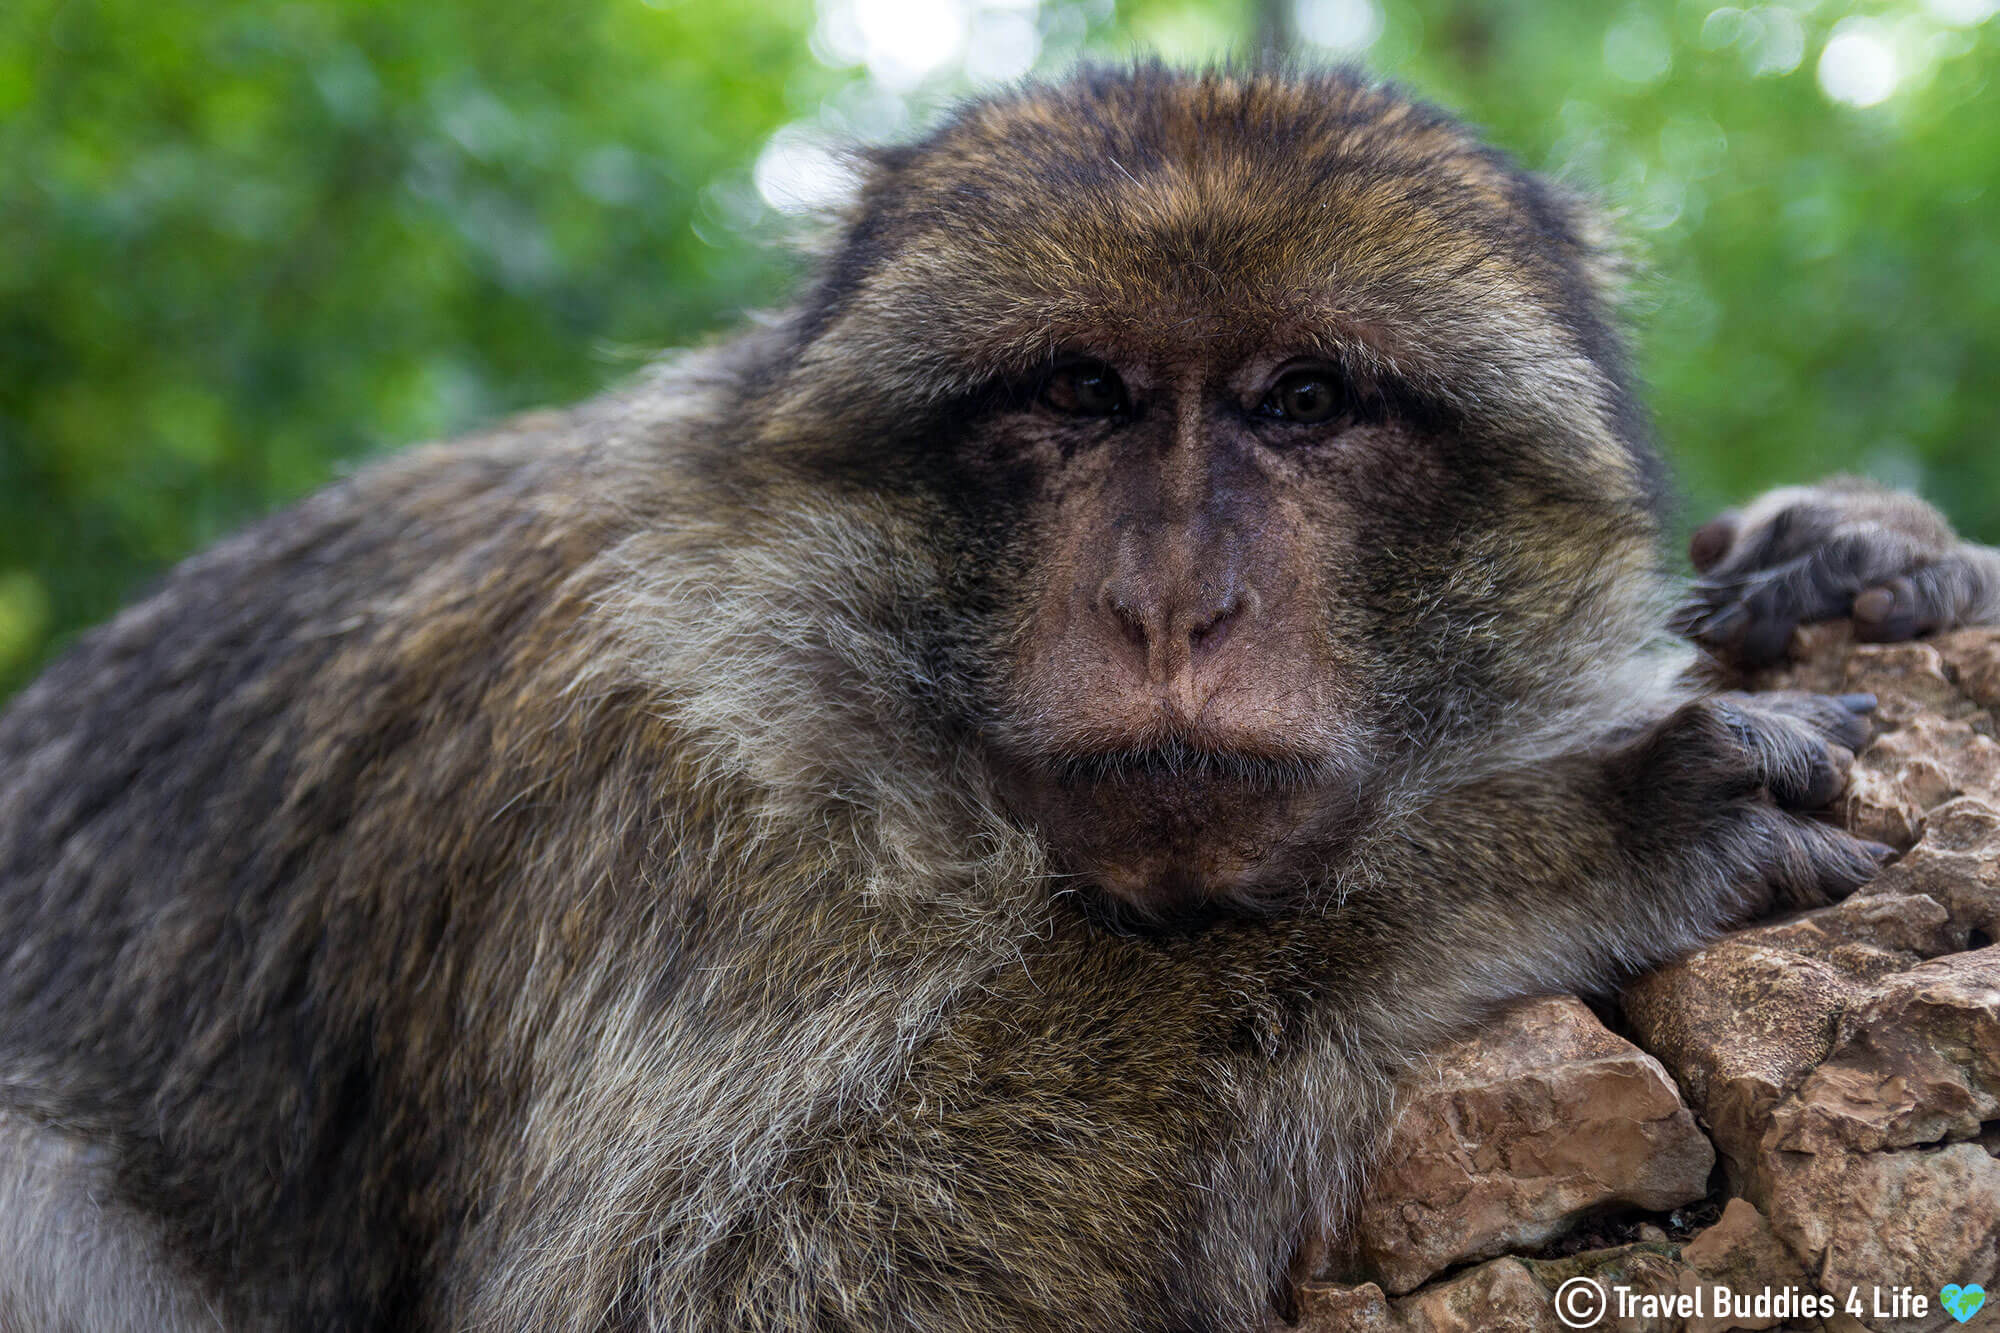 Getting Close to A Free Roaming Macaque Monkey in Southern France, Europe